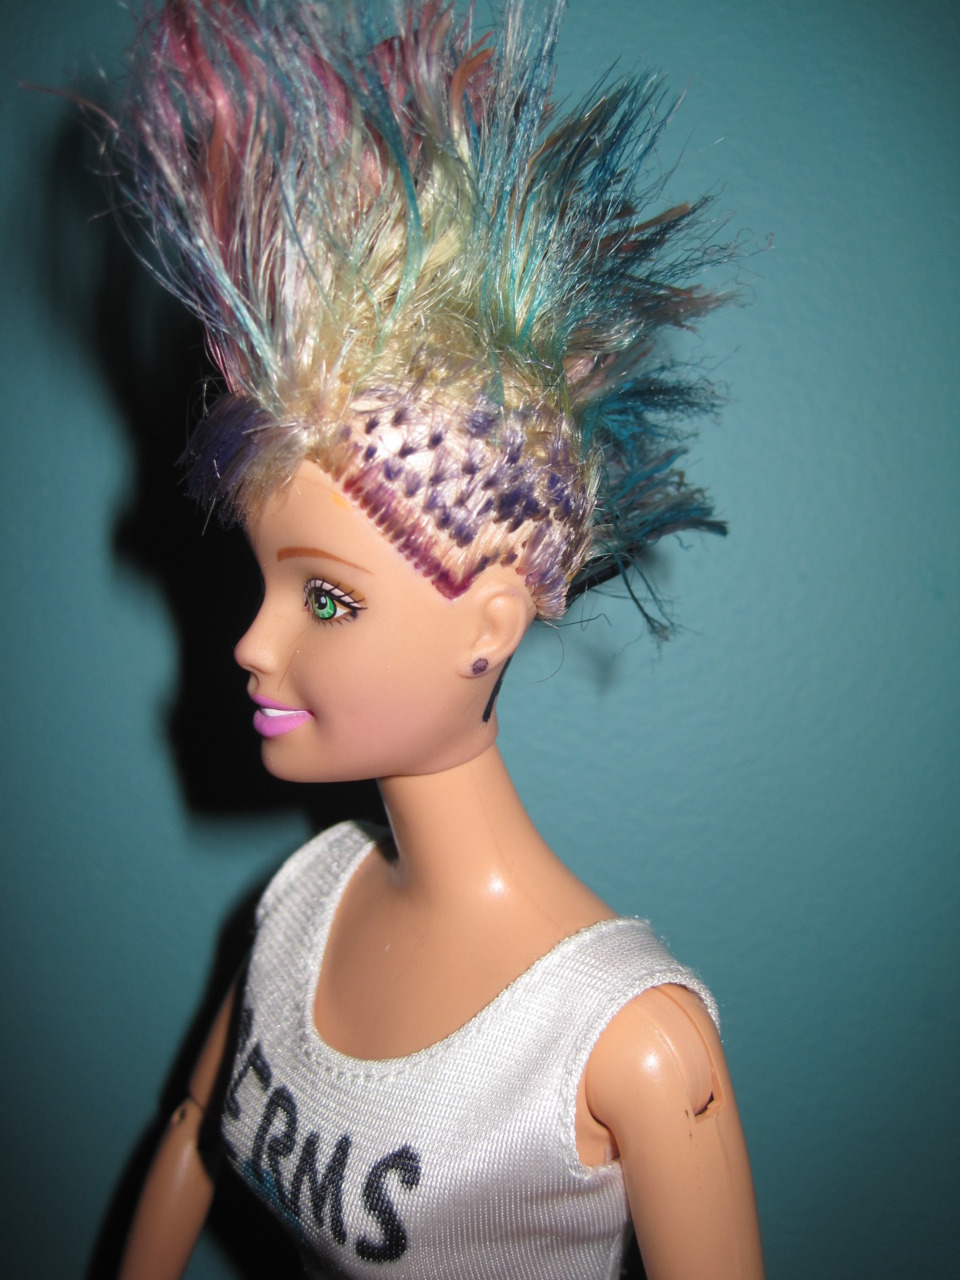 Barbie girl hair punk image 256707 on favim com